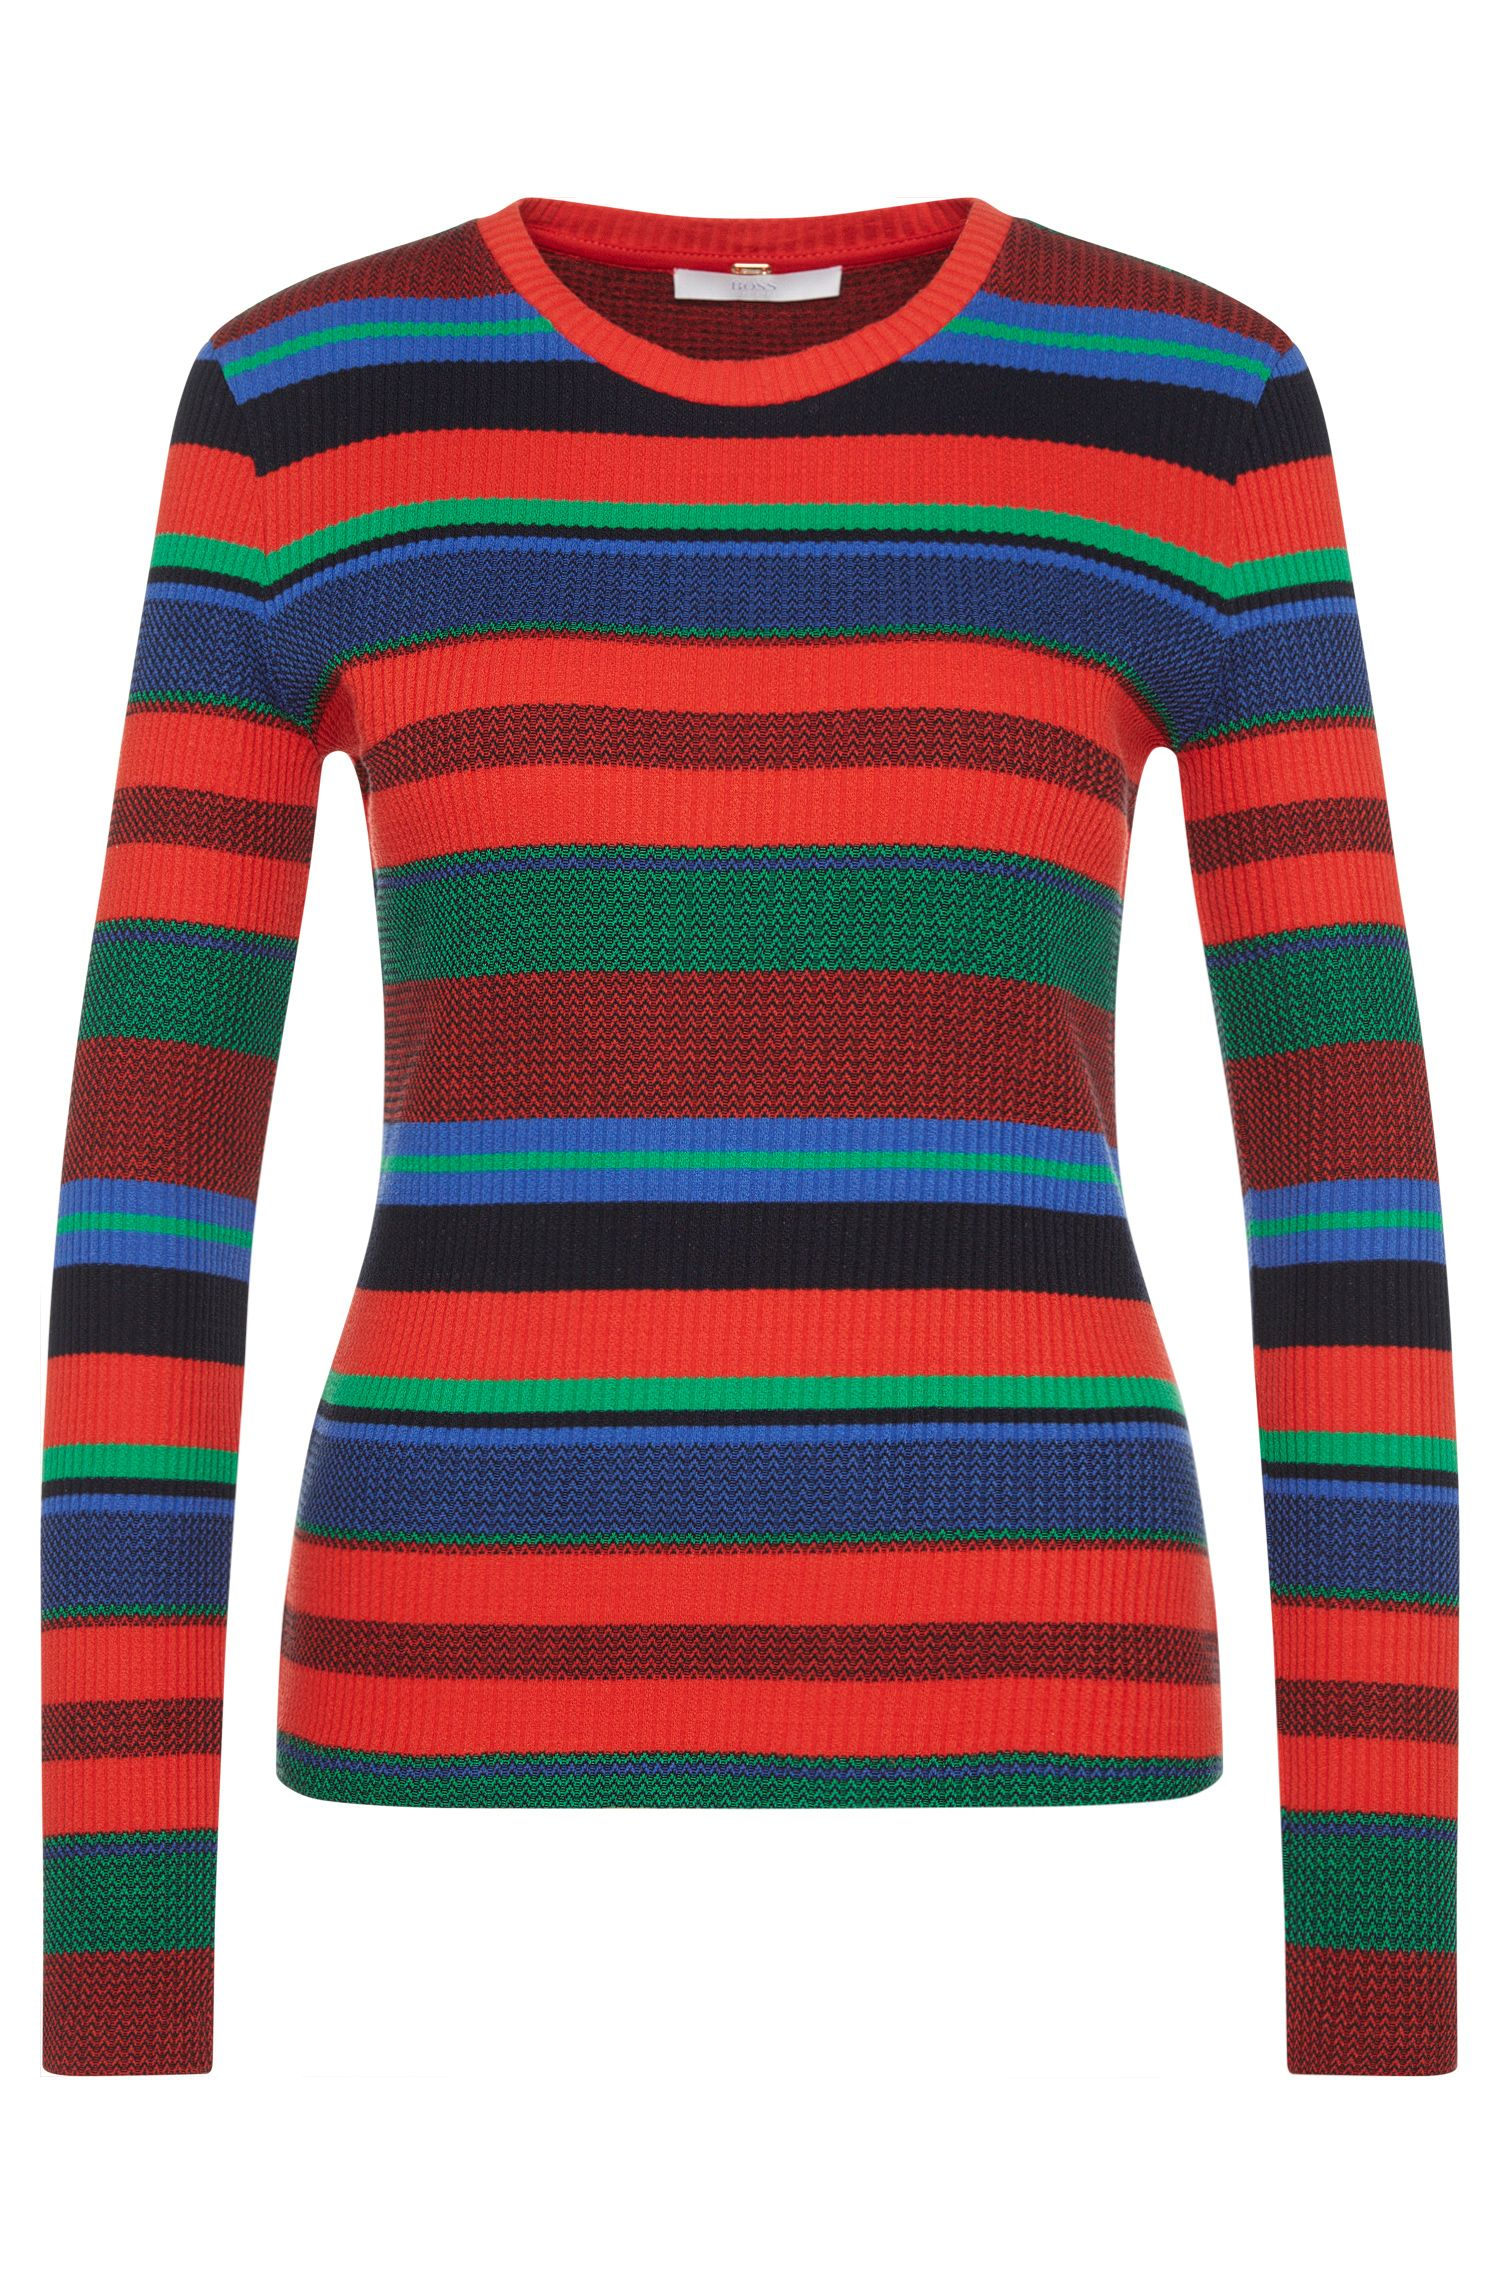 'Eriba' | Stretch Cotton Ribbed Striped Sweater